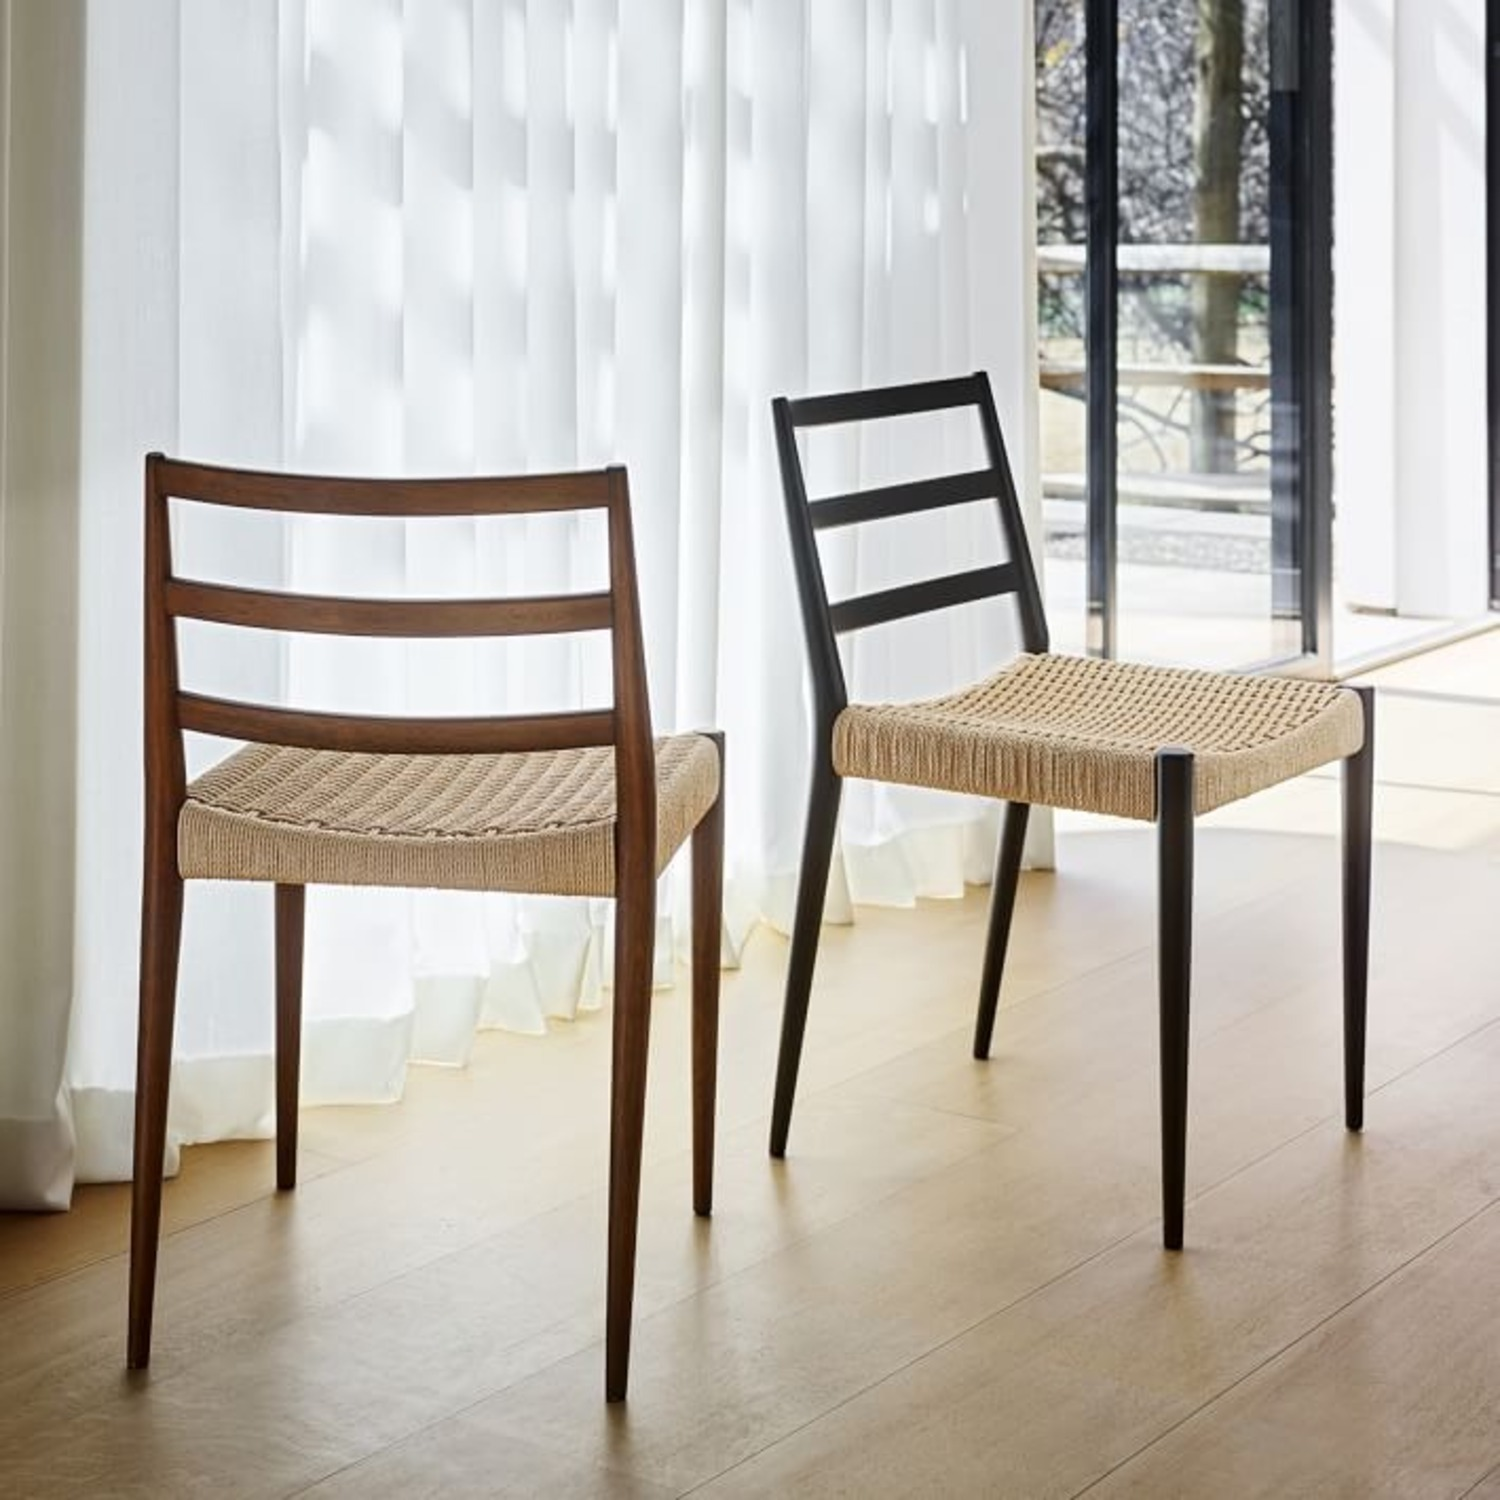 West Elm Holland Woven Dining Chair (Set of 2) - image-2